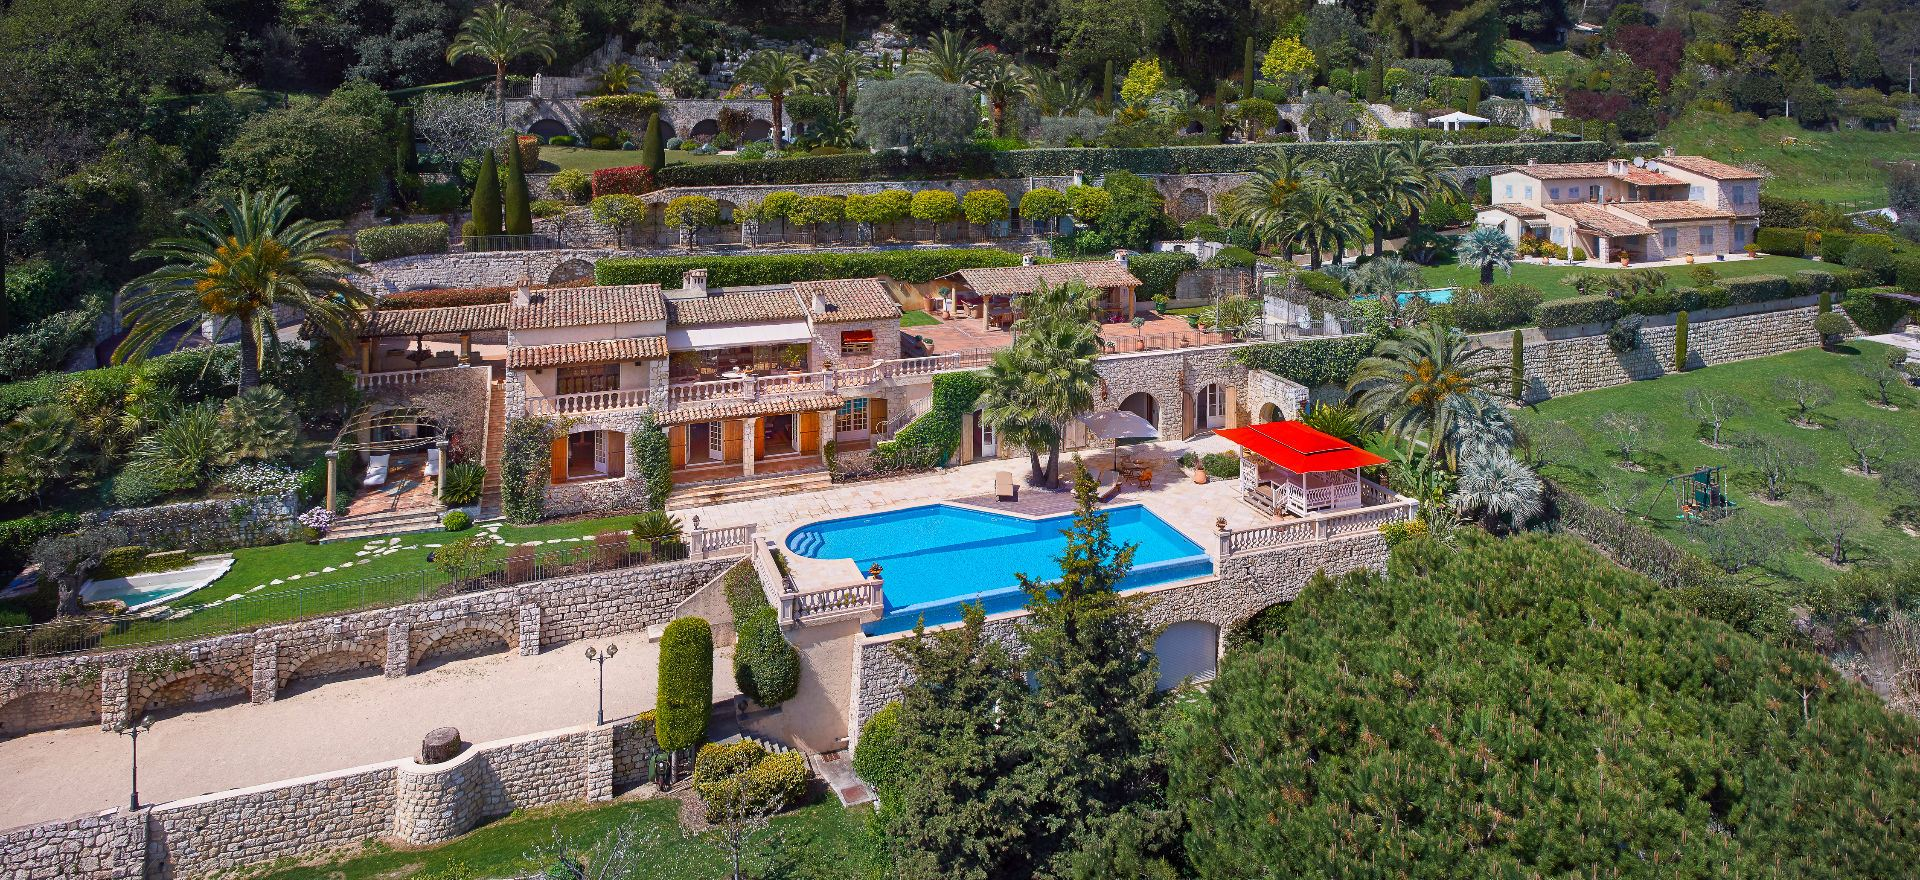 Single Family Home for Sale at Charming and authentic provencal estate in La Colle sur Loup - Sole agent La Colle Sur Loup, Provence-Alpes-Cote D'Azur, 06480 France